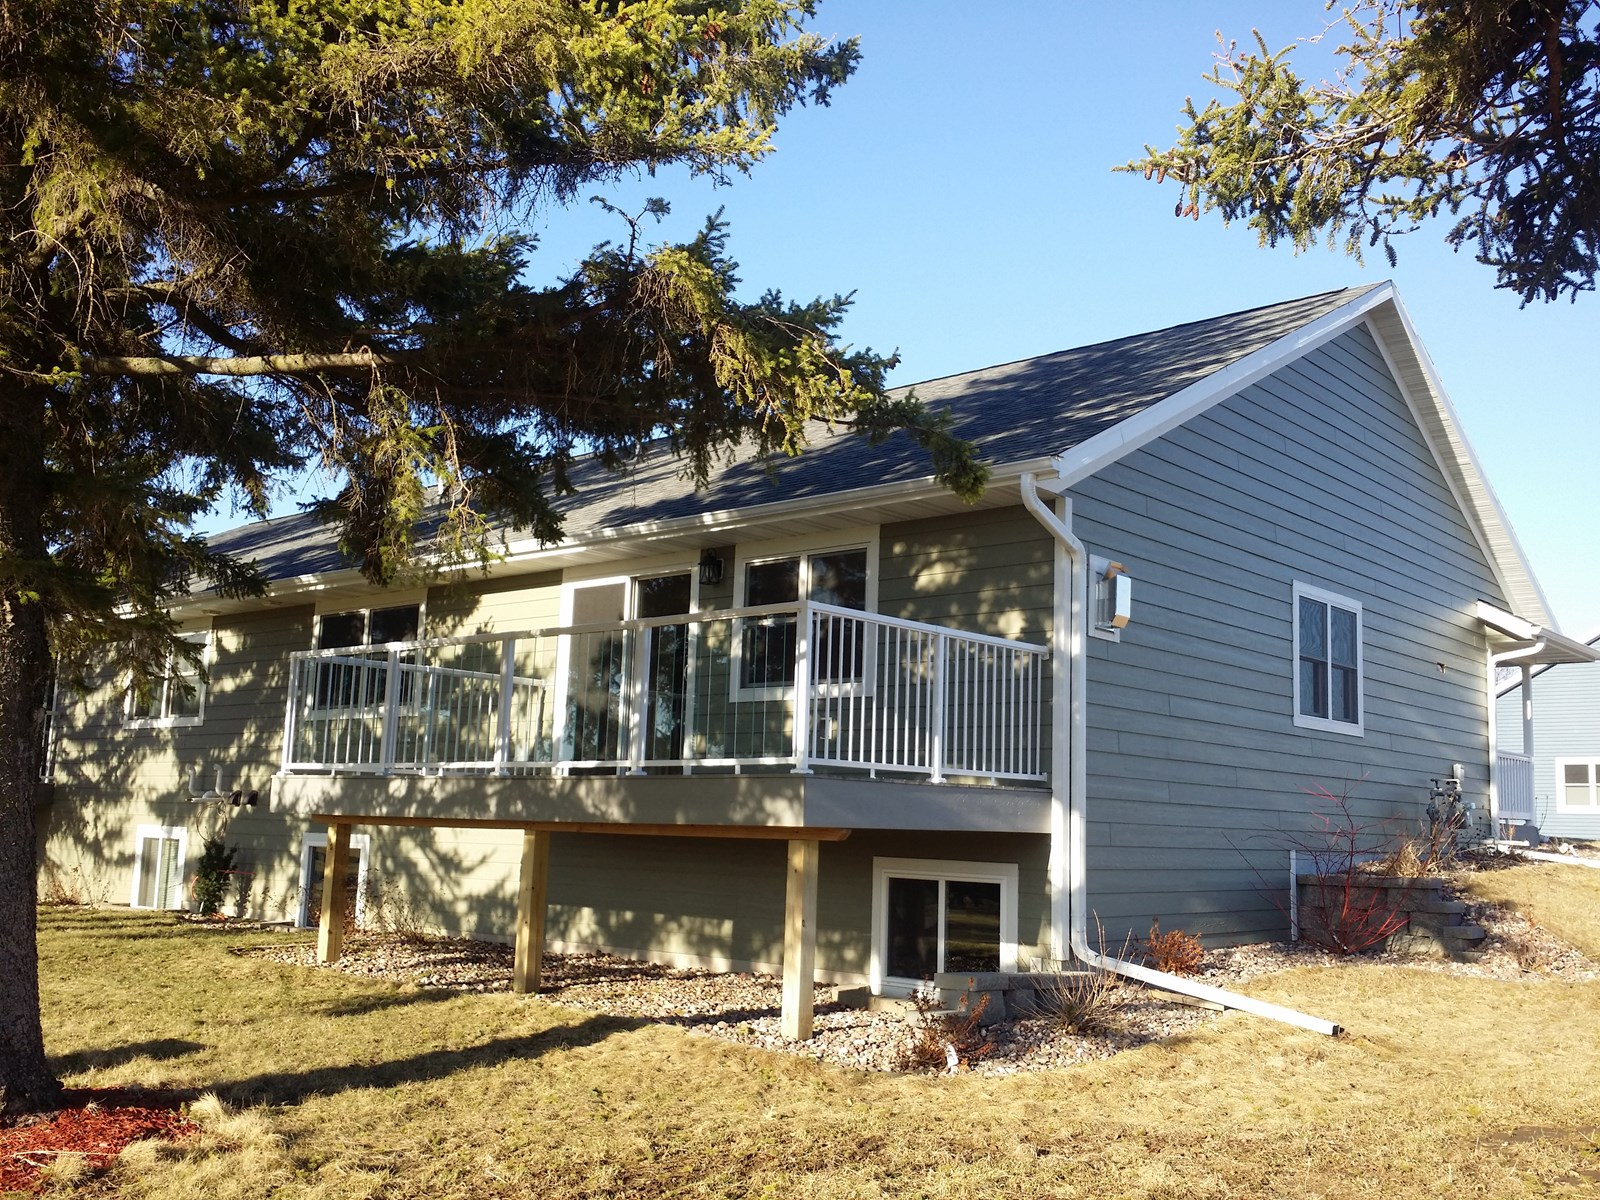 New Build - 3br 2ba Golf Course Townhouse For Sale